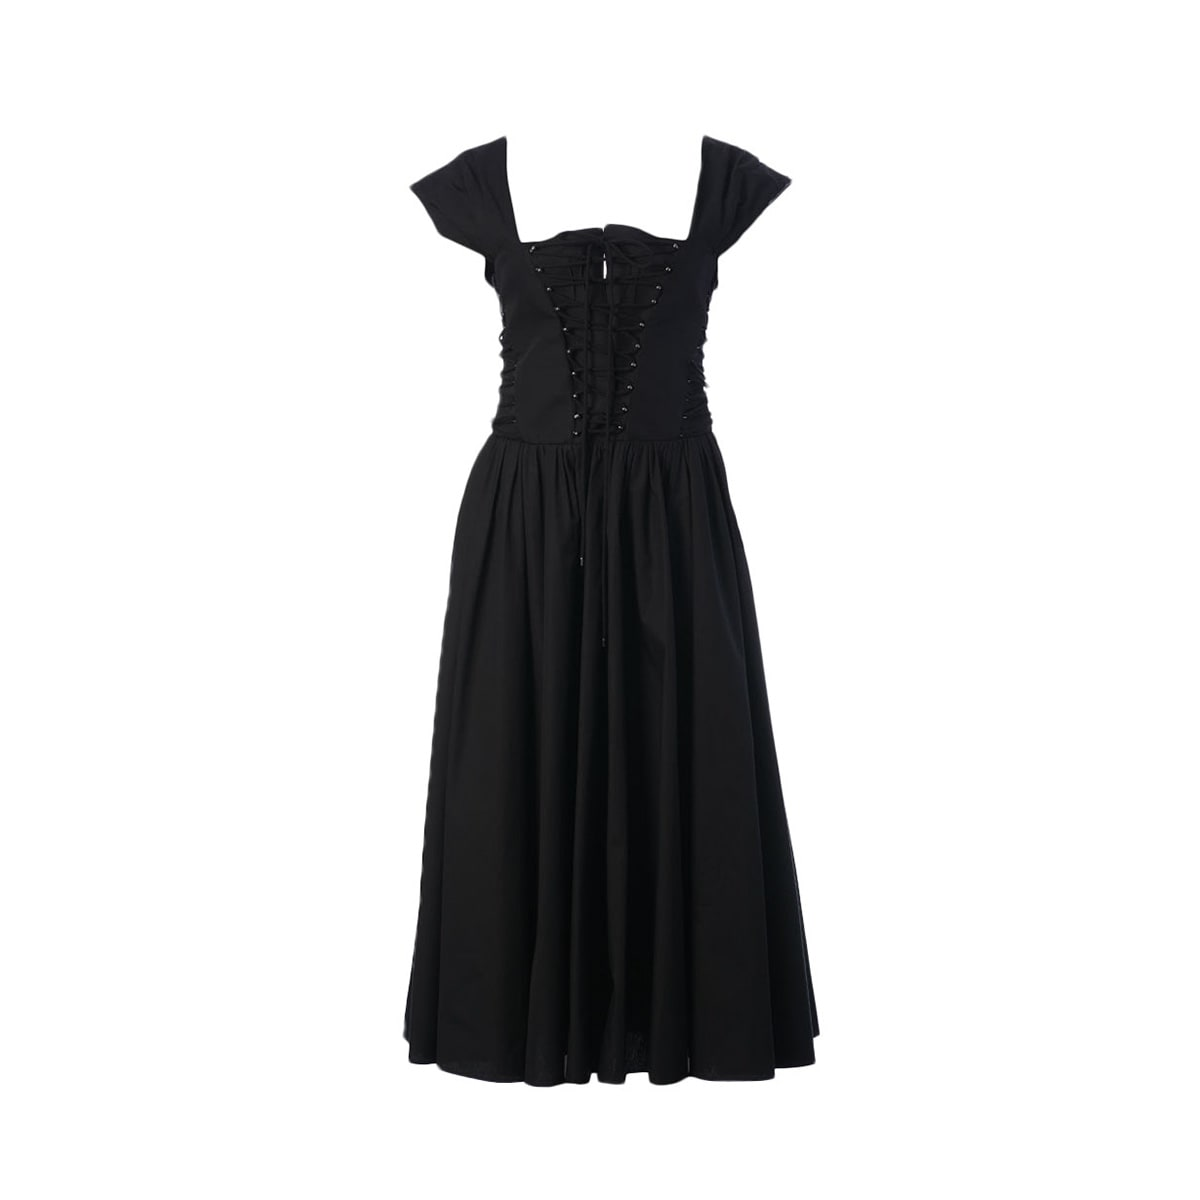 Buy Philosophy di Lorenzo Serafini Lace Front Pleated Dress online, shop Philosophy di Lorenzo Serafini with free shipping